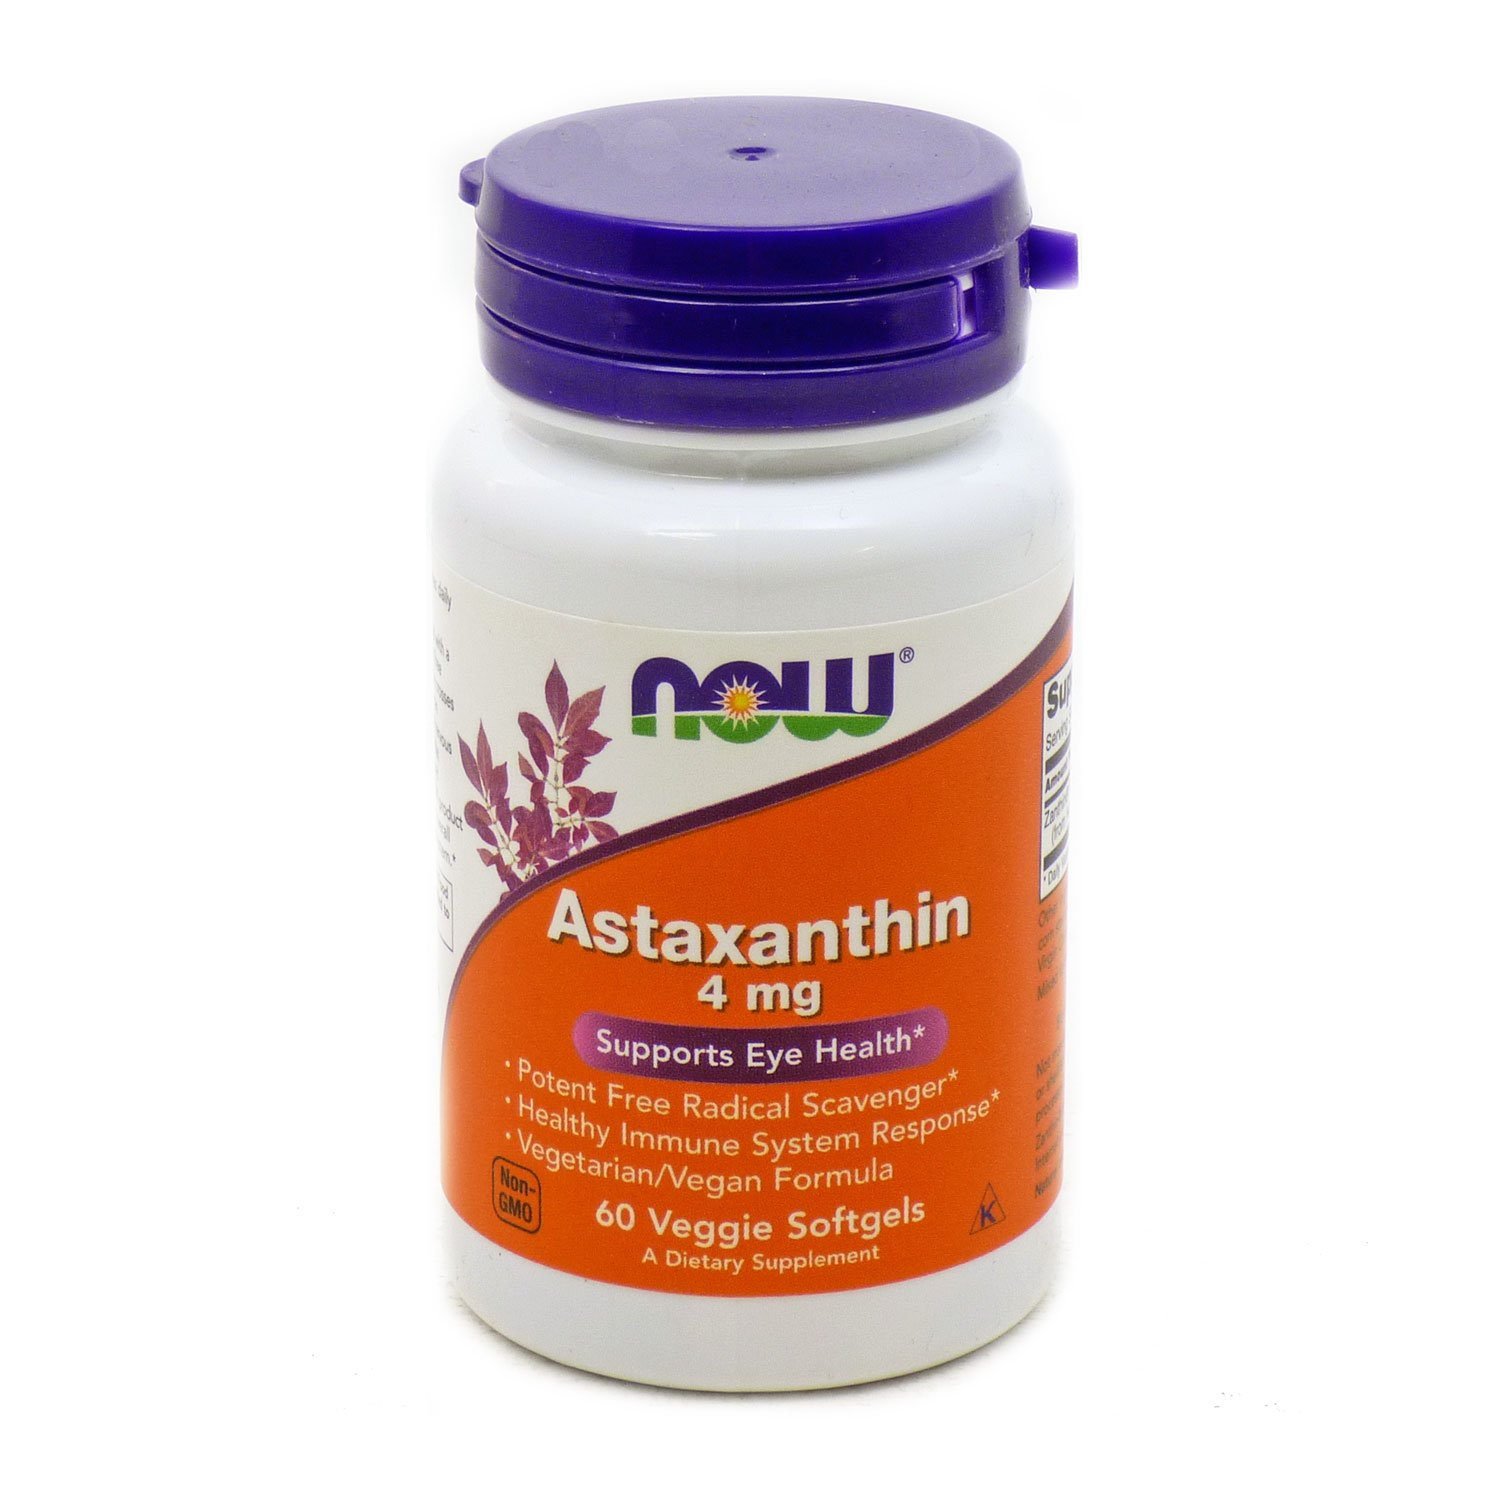 Bundle – 2 Items : 1 bottle of Astaxanthin 4 Mg By Now Foods - 60 Softgels and 1 VDC Pill Box